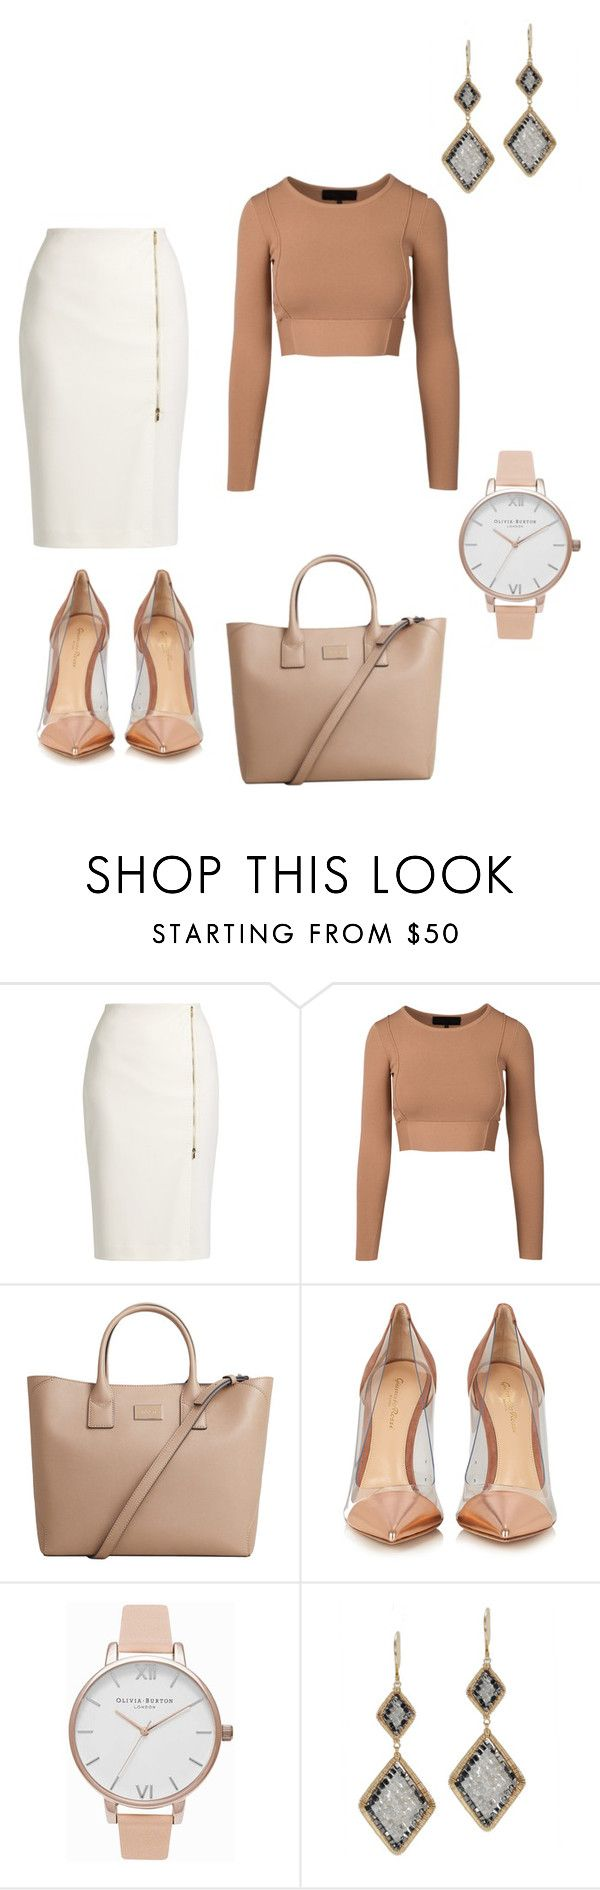 """Everyday Career Girl outfit 2"" by queenofdraguns ❤ liked on Polyvore featuring MaxMara, MANGO, Gianvito Rossi, Olivia Burton and Dana Kellin"